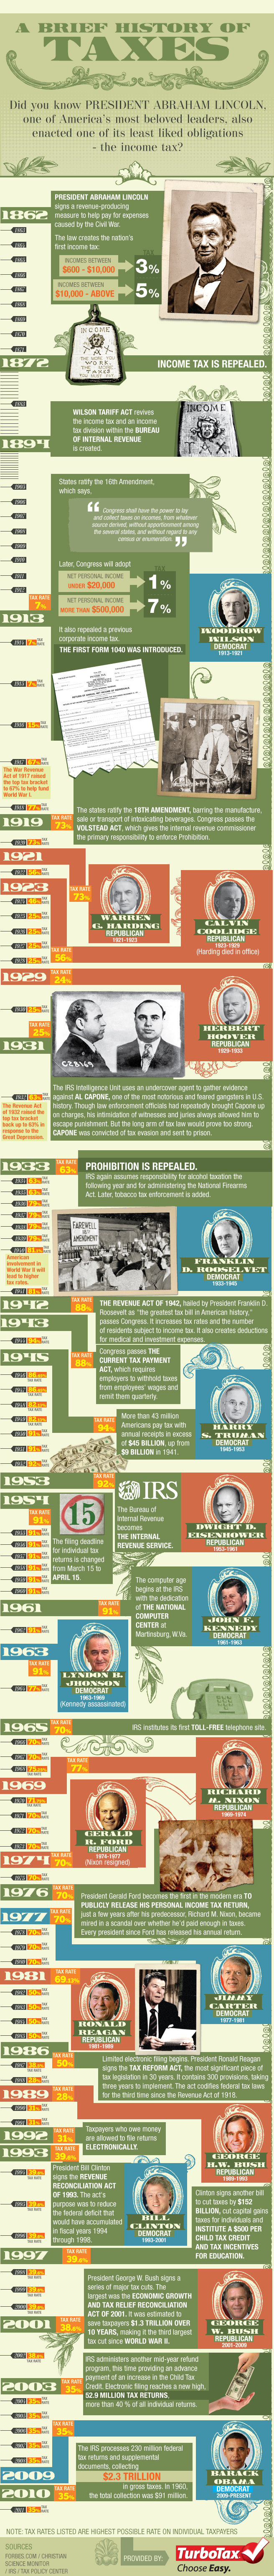 a brief history of US income taxes infographic